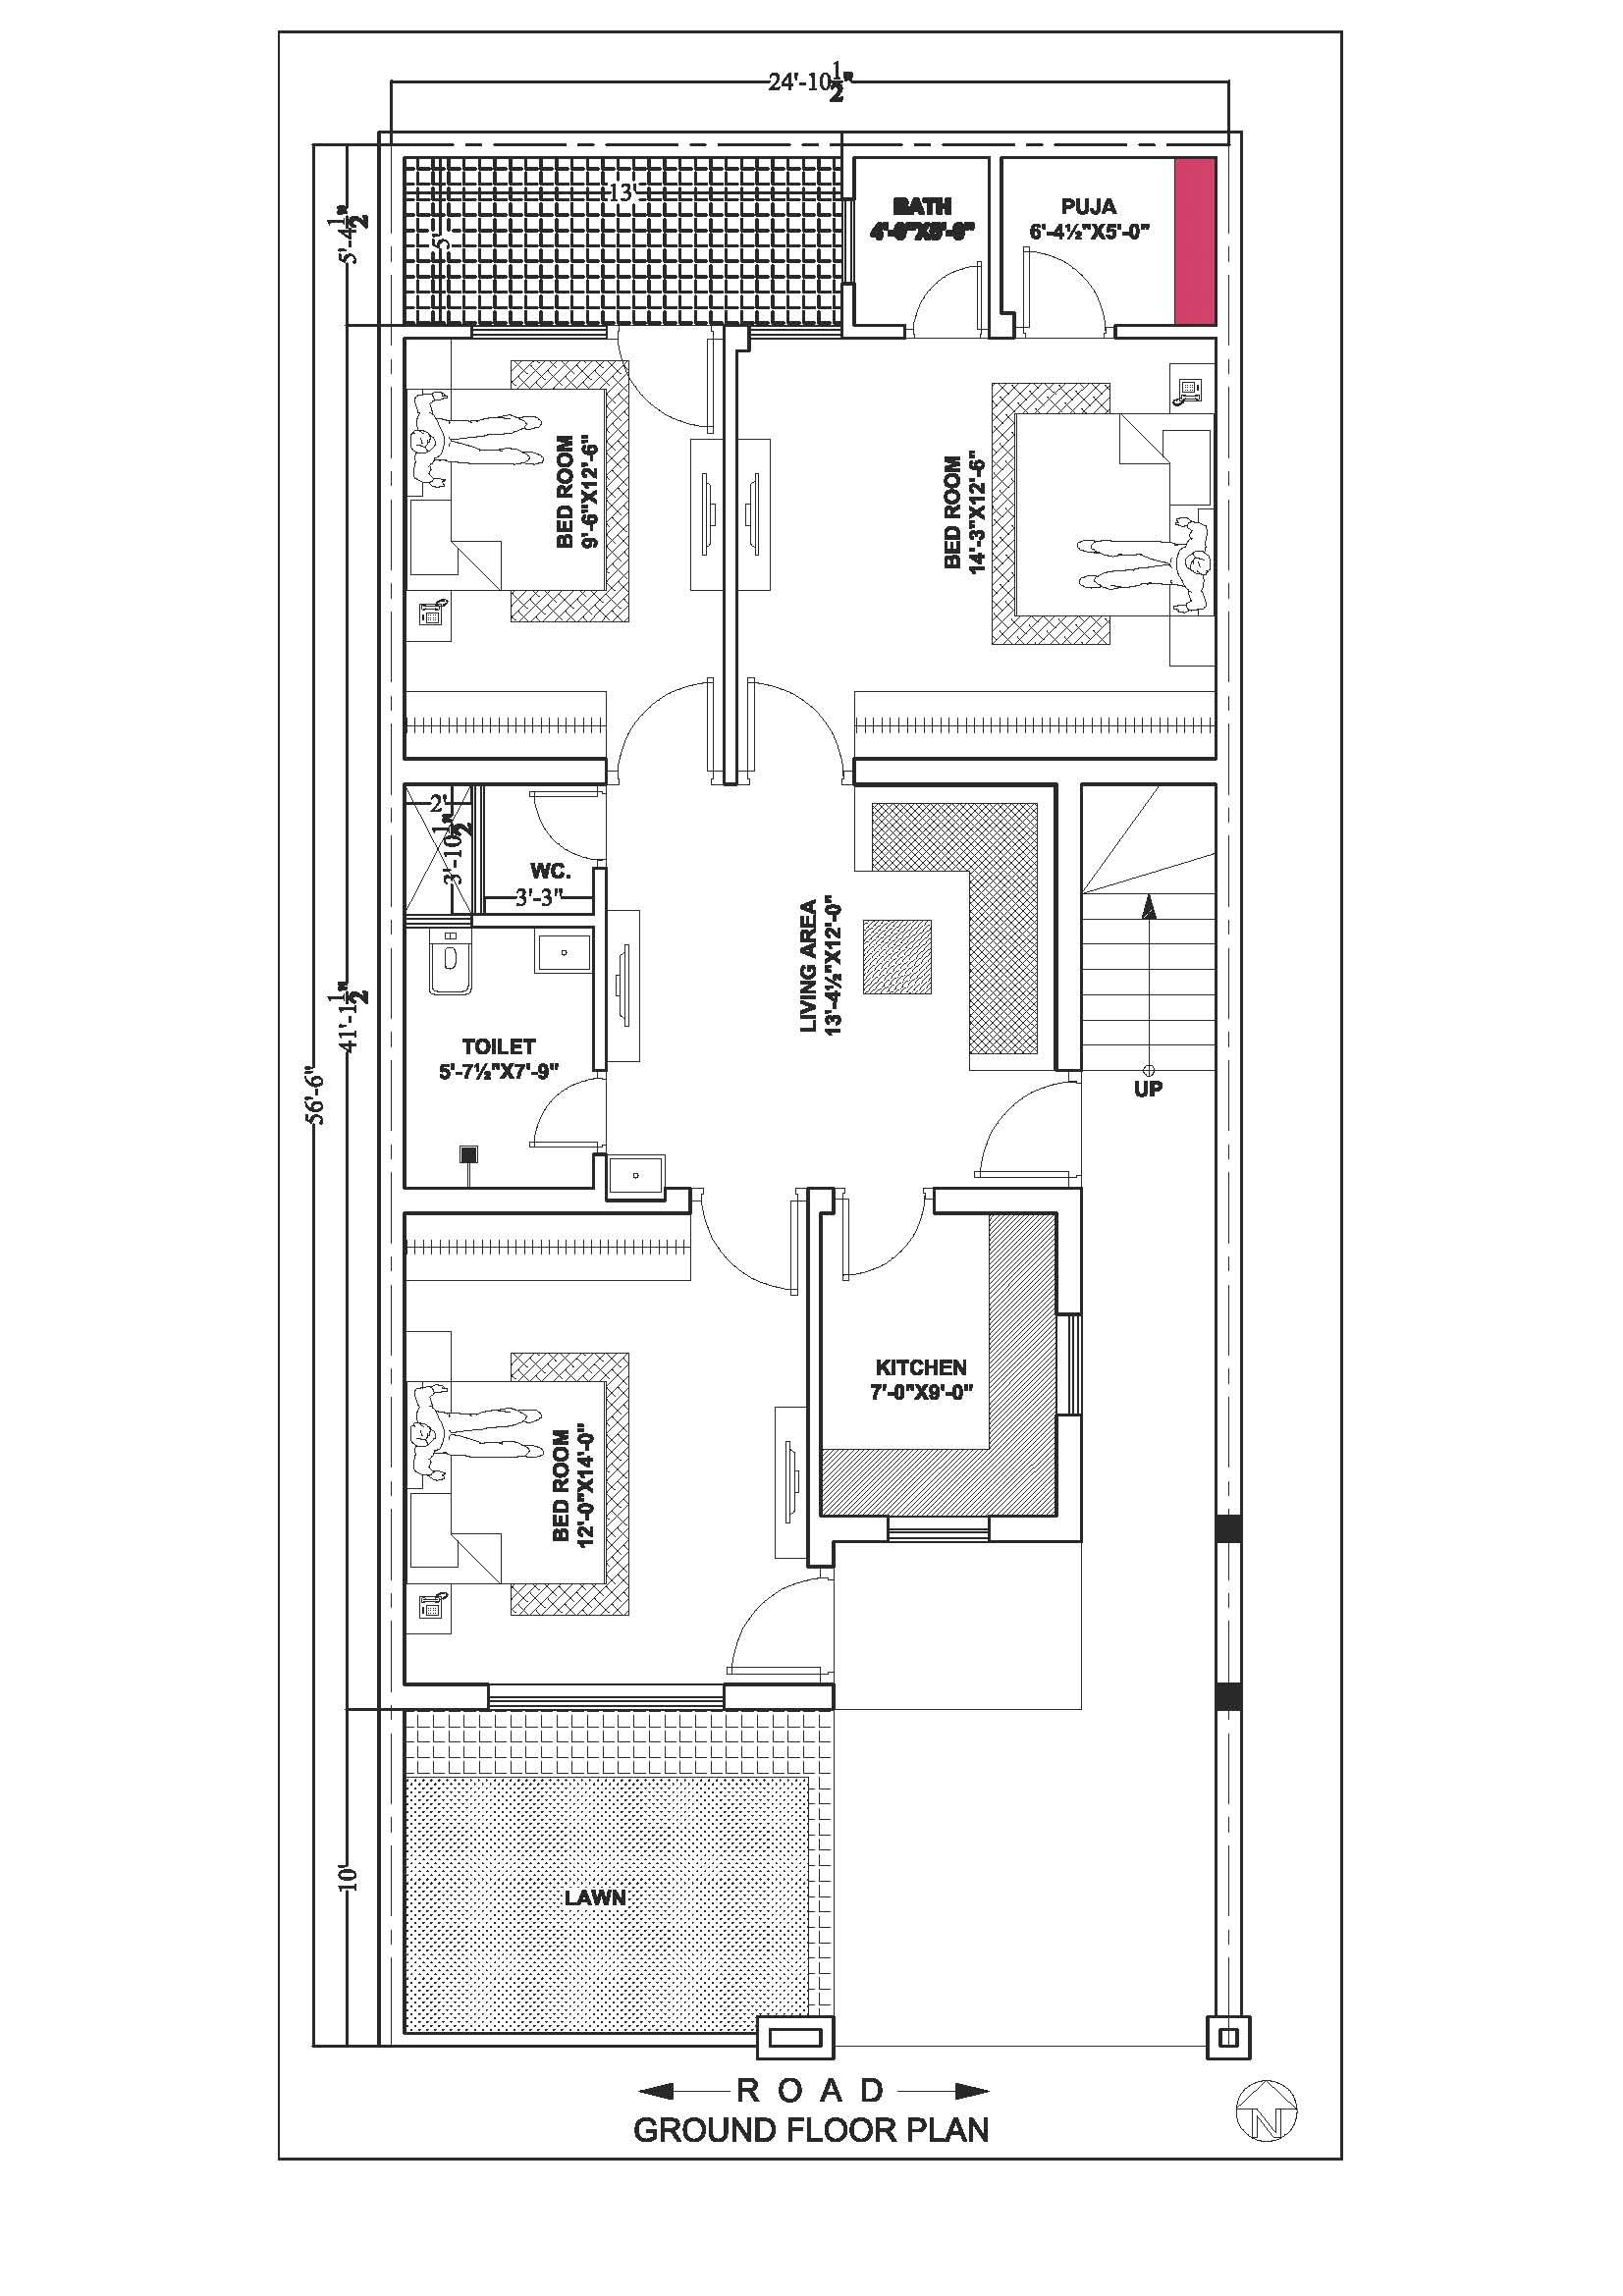 24 56 Ground Floor Second Option Ground Floor Plan Duplex House Plans House Map